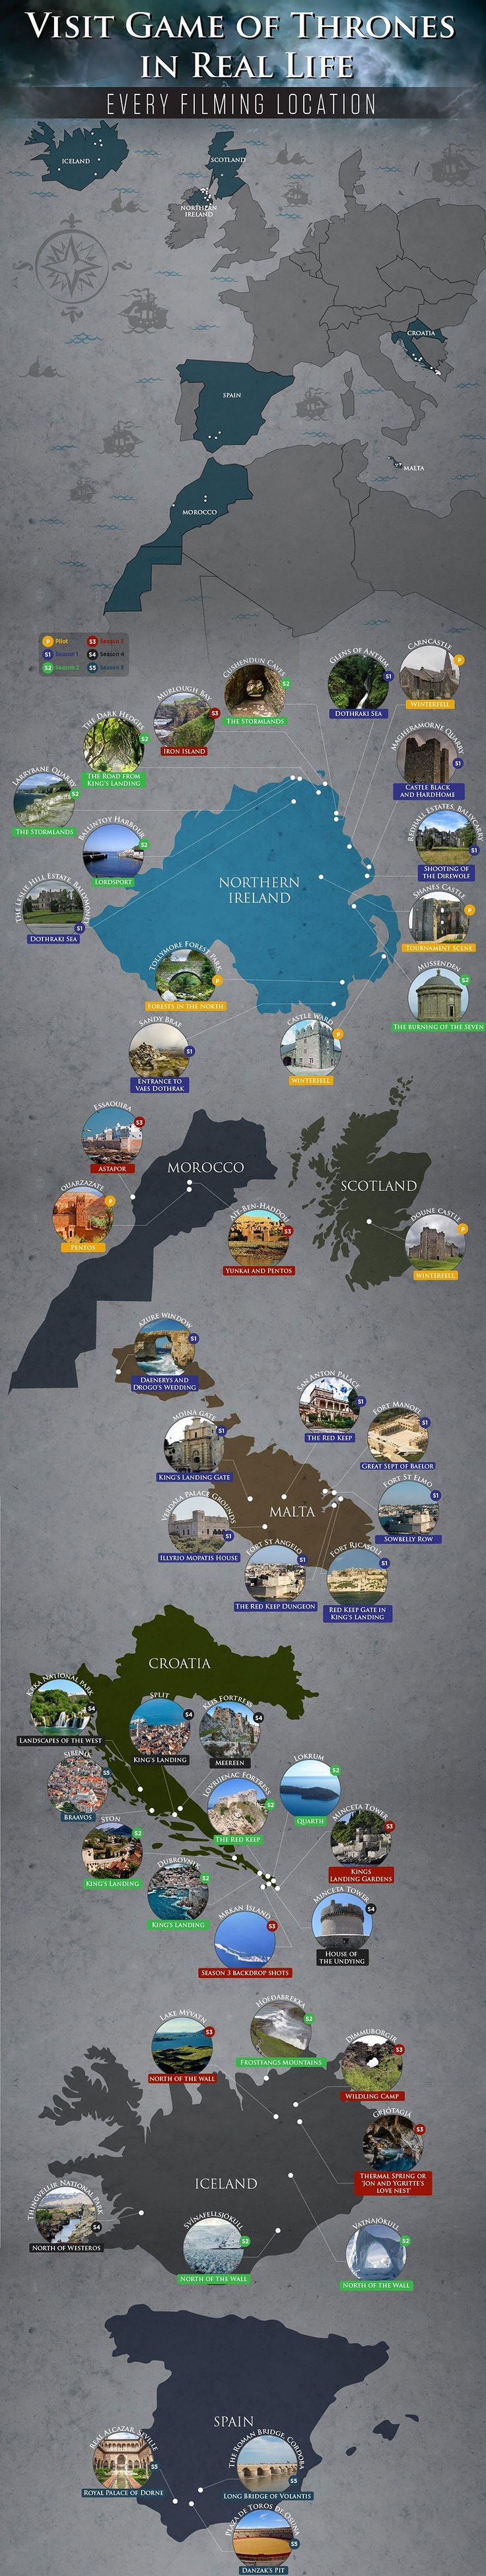 This infographic by travel agency Lawrence of Morocco reveals the true locations used in the hit HBO TV series Game of Thrones. The main headquarters is at Paint Hall studios in Belfast, Northern Ireland, where most of the interior sets are housed; the better part of location shooting also takes place in Northern Ireland, but many other European countries, and even Africa, have been used as well.